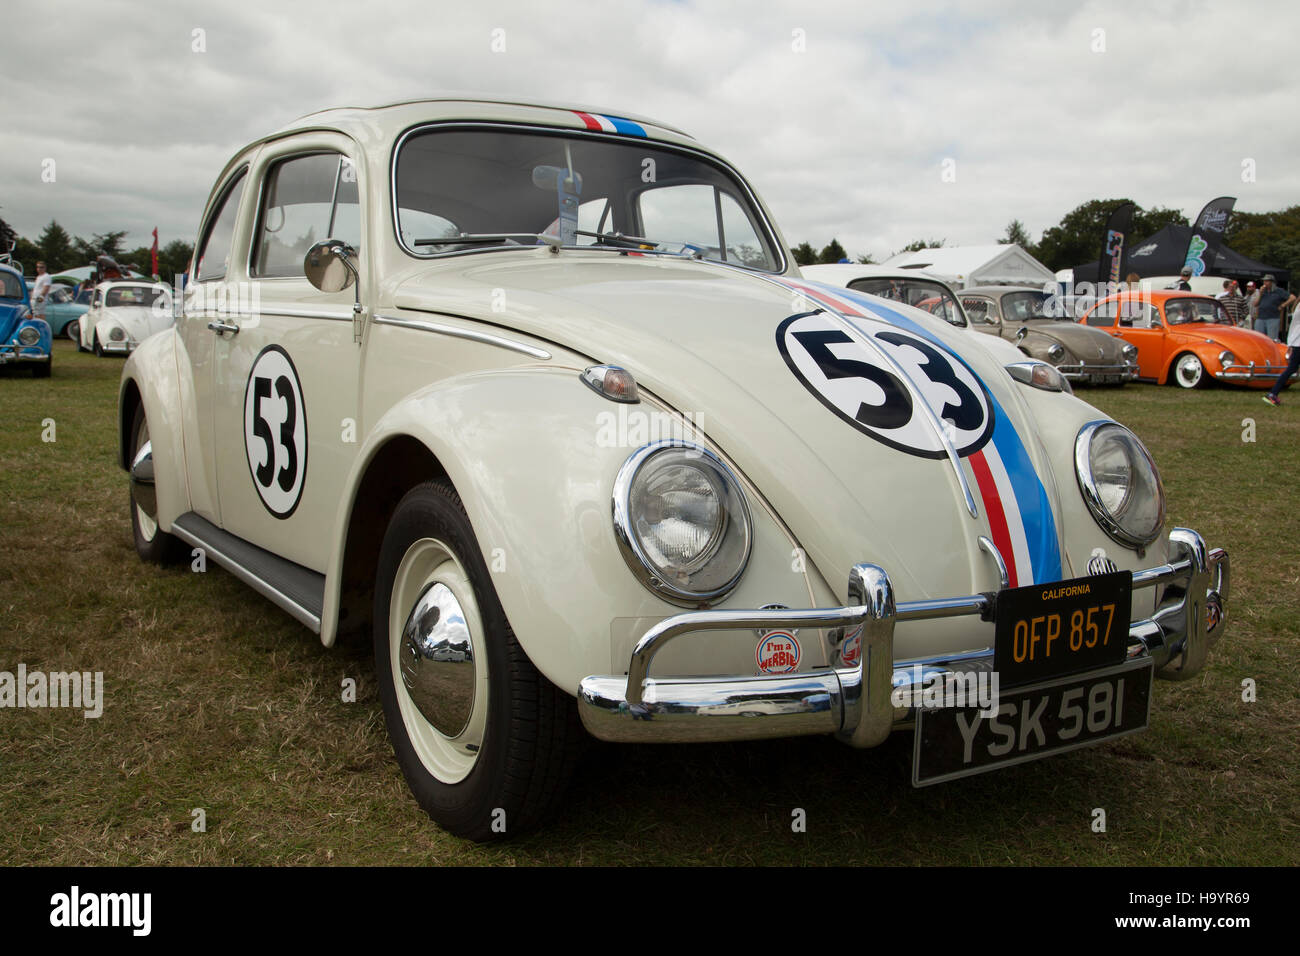 Herbie VW Beetle Car at Harewood House VW festival 2016 - Stock Image